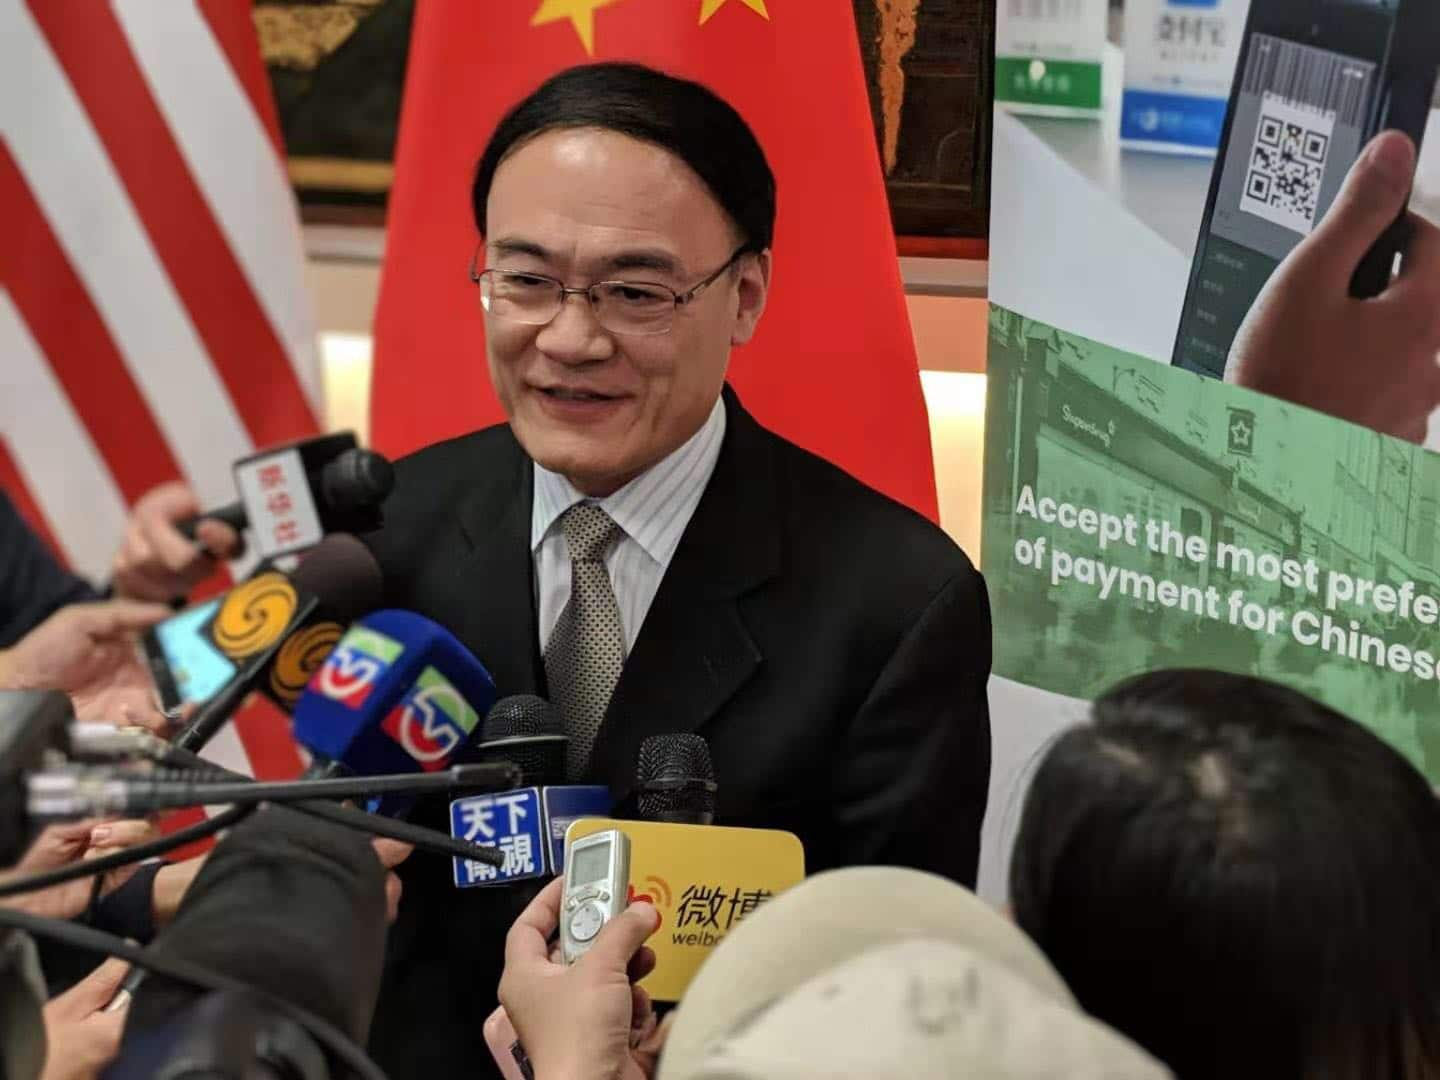 Mobile payment launched to facilitate Chinese consular services in San Francisco